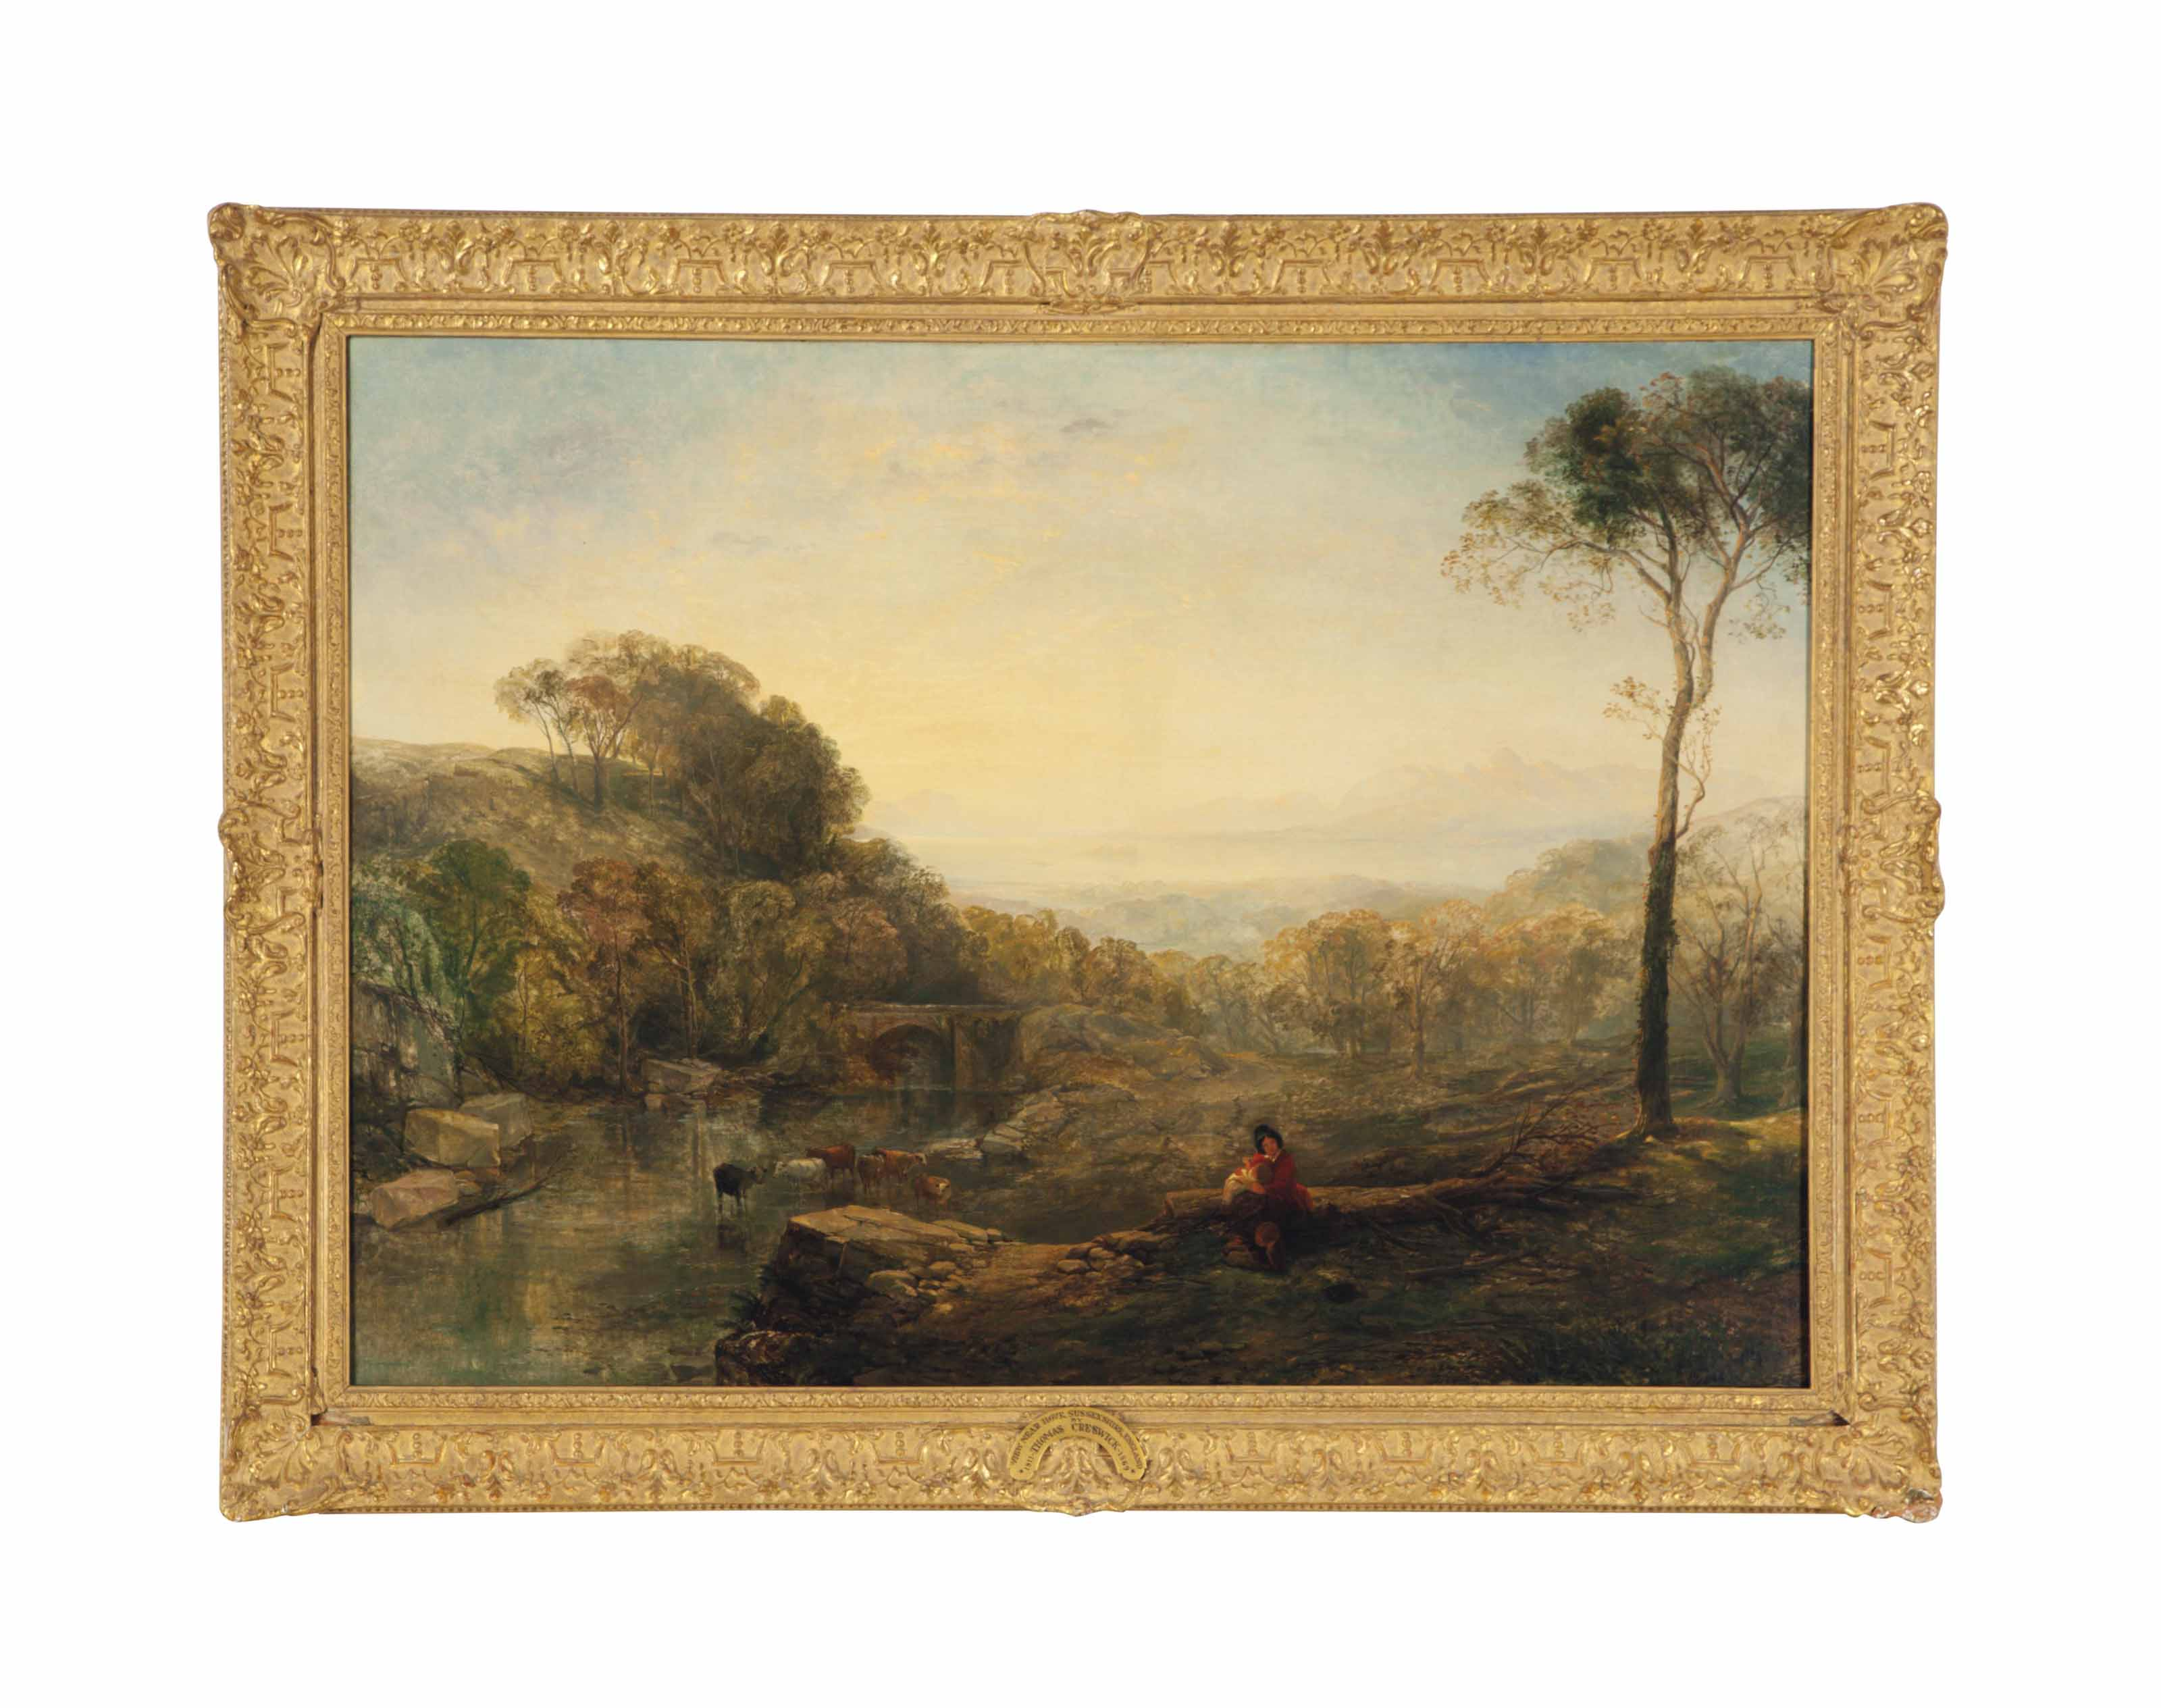 View near Hove, Sussexshire, English